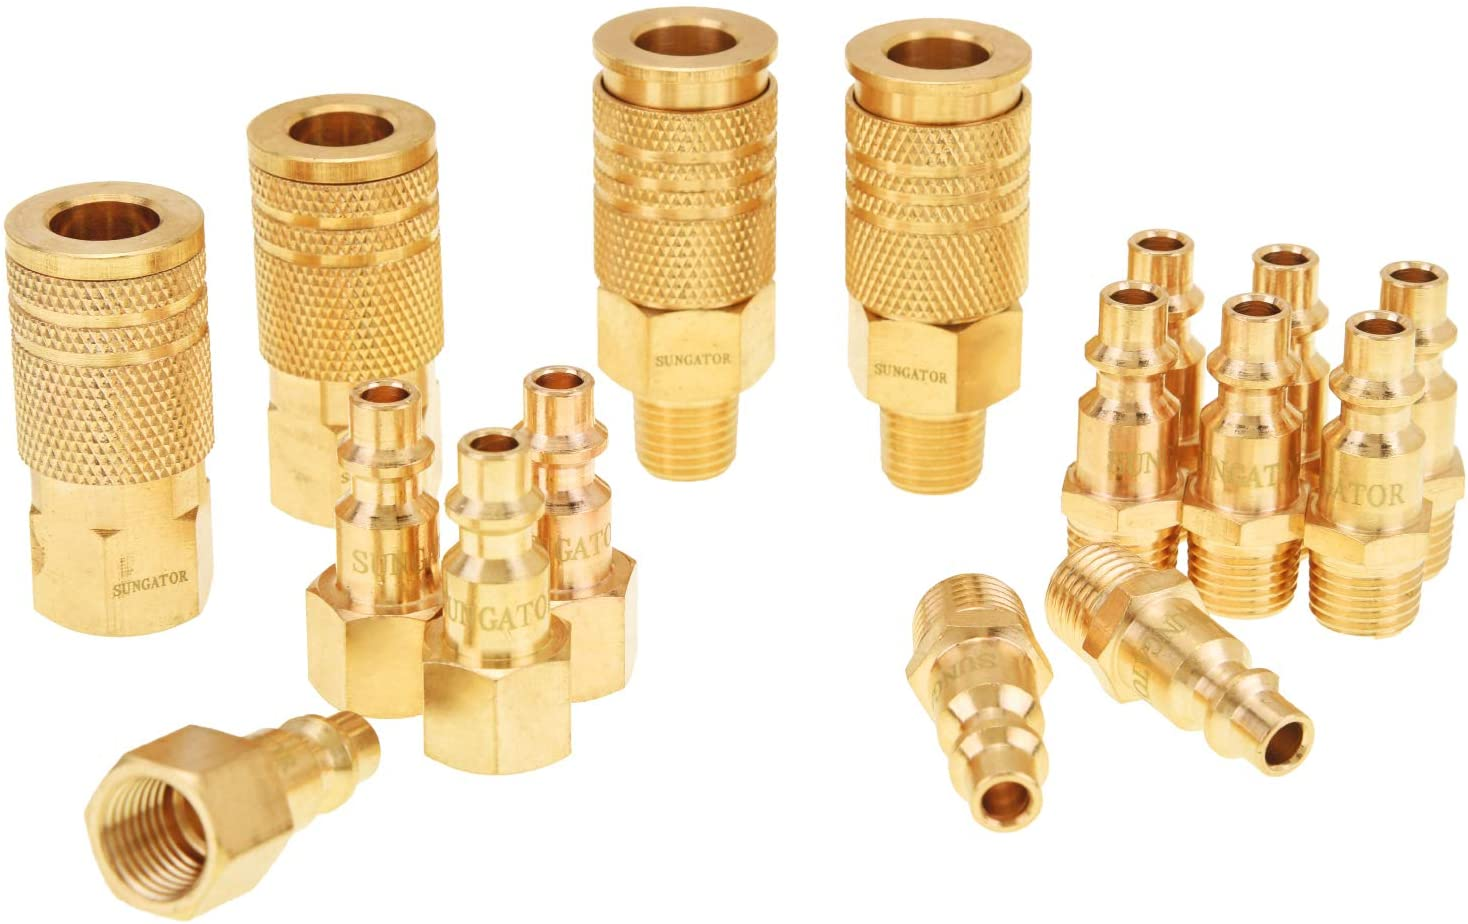 "Air Fittings, Air Coupler and Plug Kit, Solid Brass Quick Connect Set, Industrial 1/4"" NPT Air Tool Fittings Set with Storage Case (16-Piece) - -"